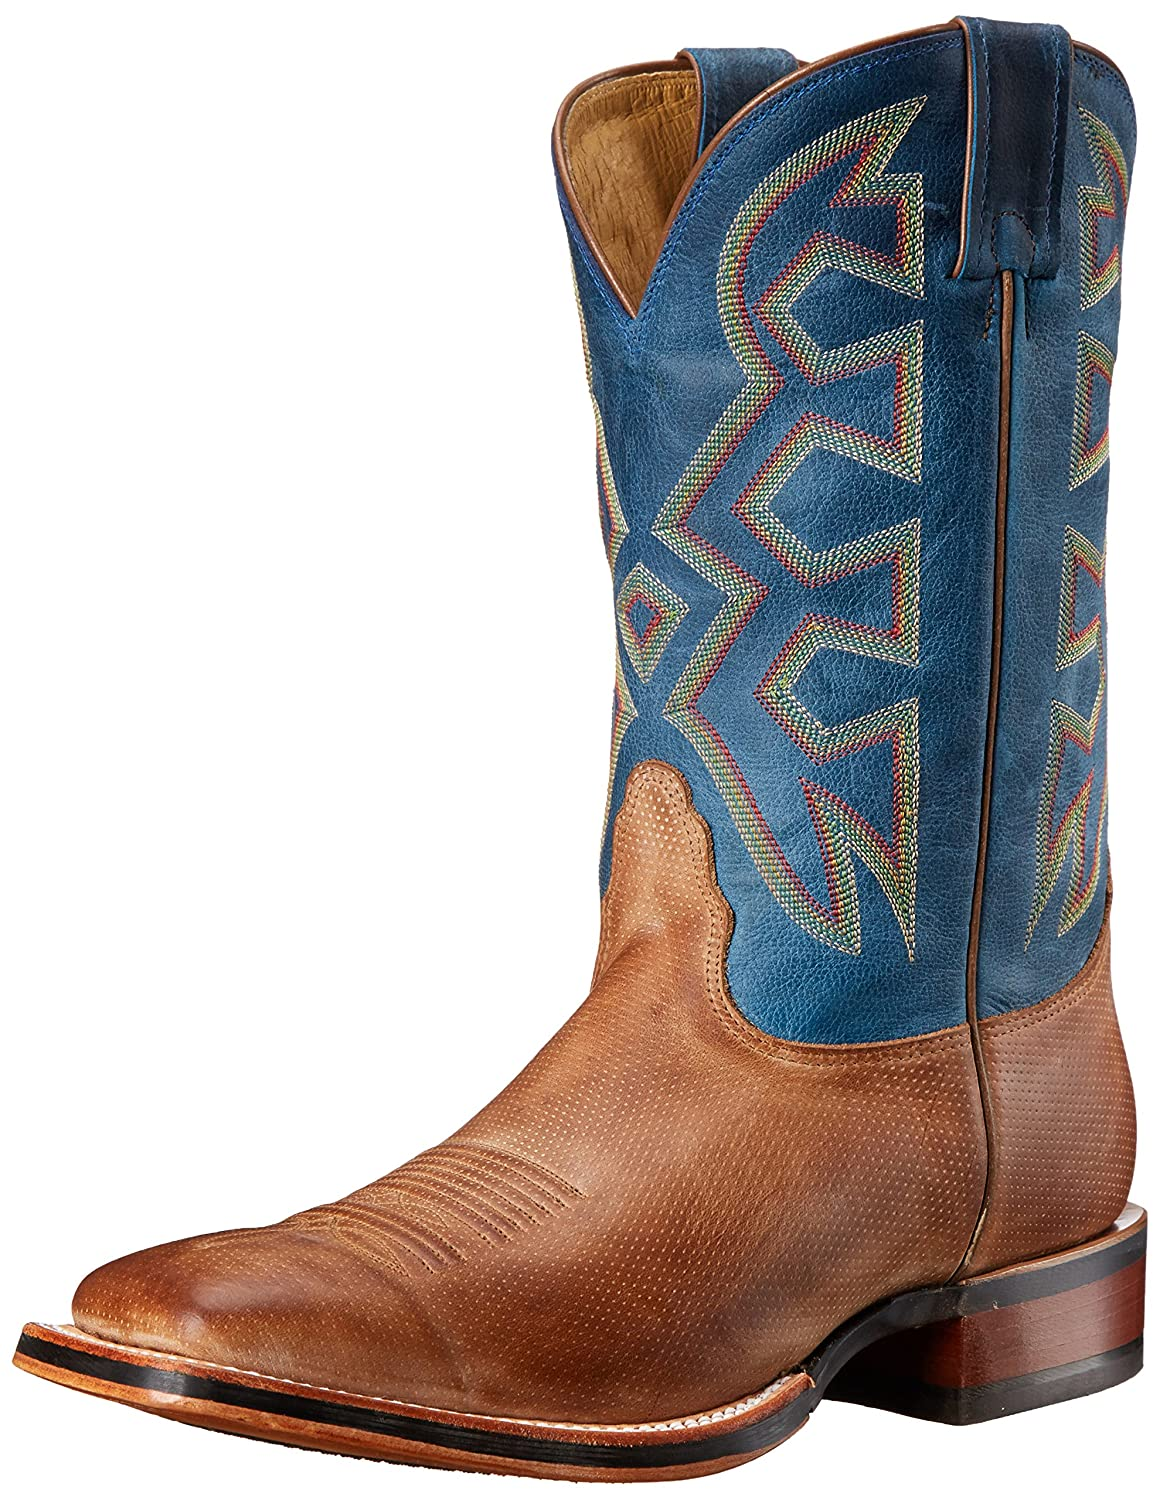 Nocona Boots Men's Let's Rodeo 11 Inch Western Riding Boot